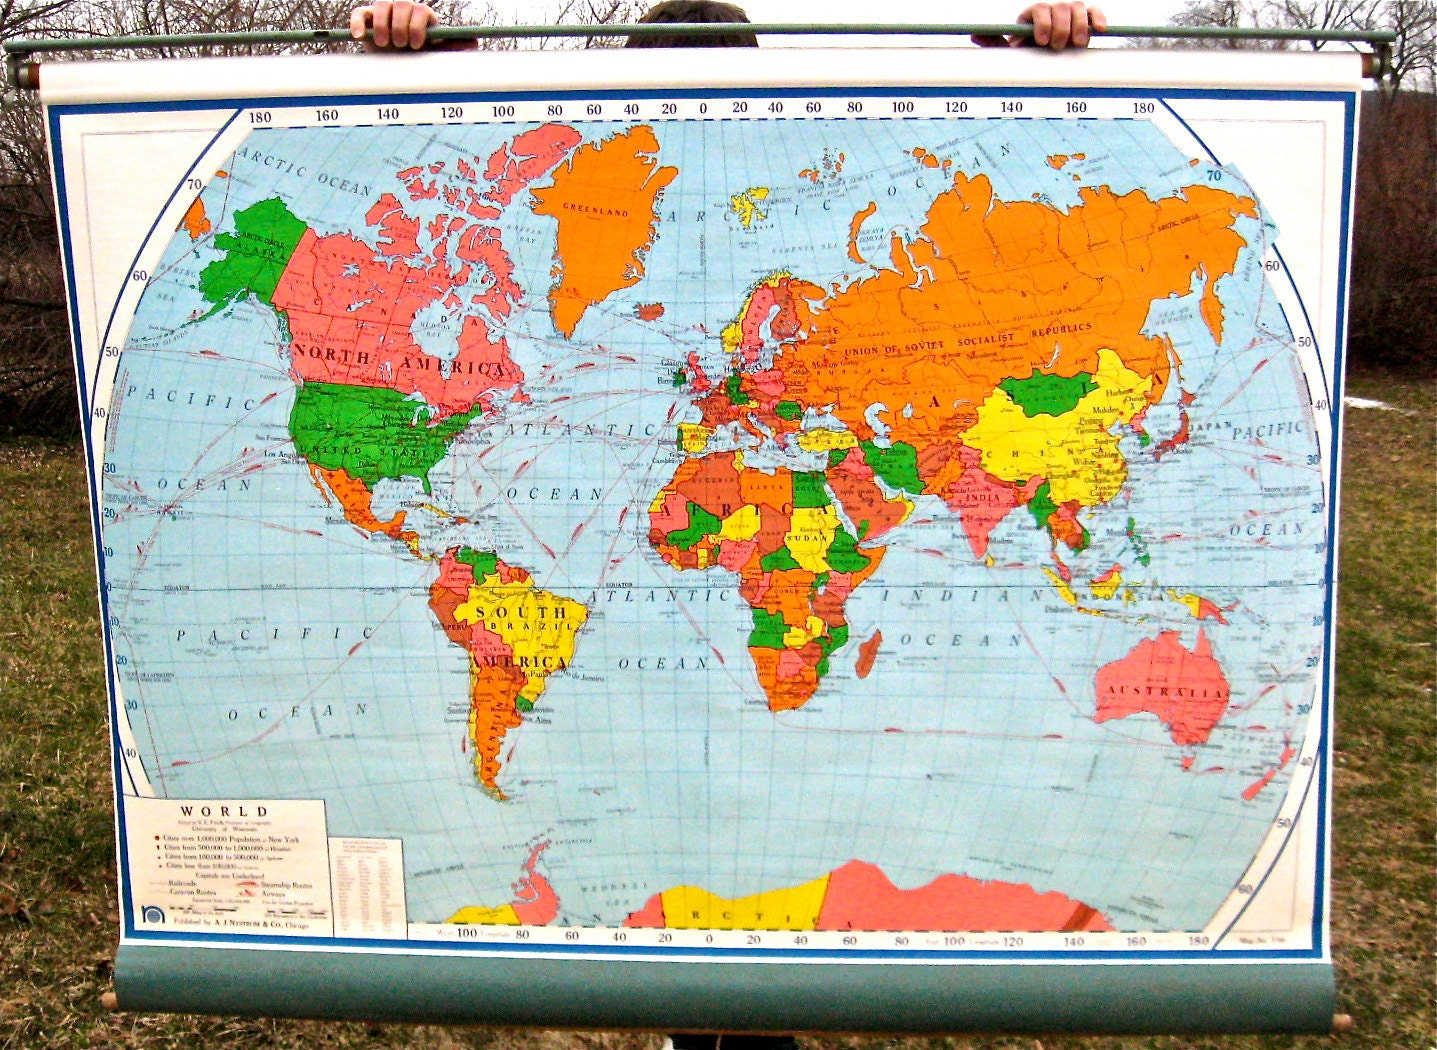 World map vintage etsy dinosauriensfo gumiabroncs Gallery